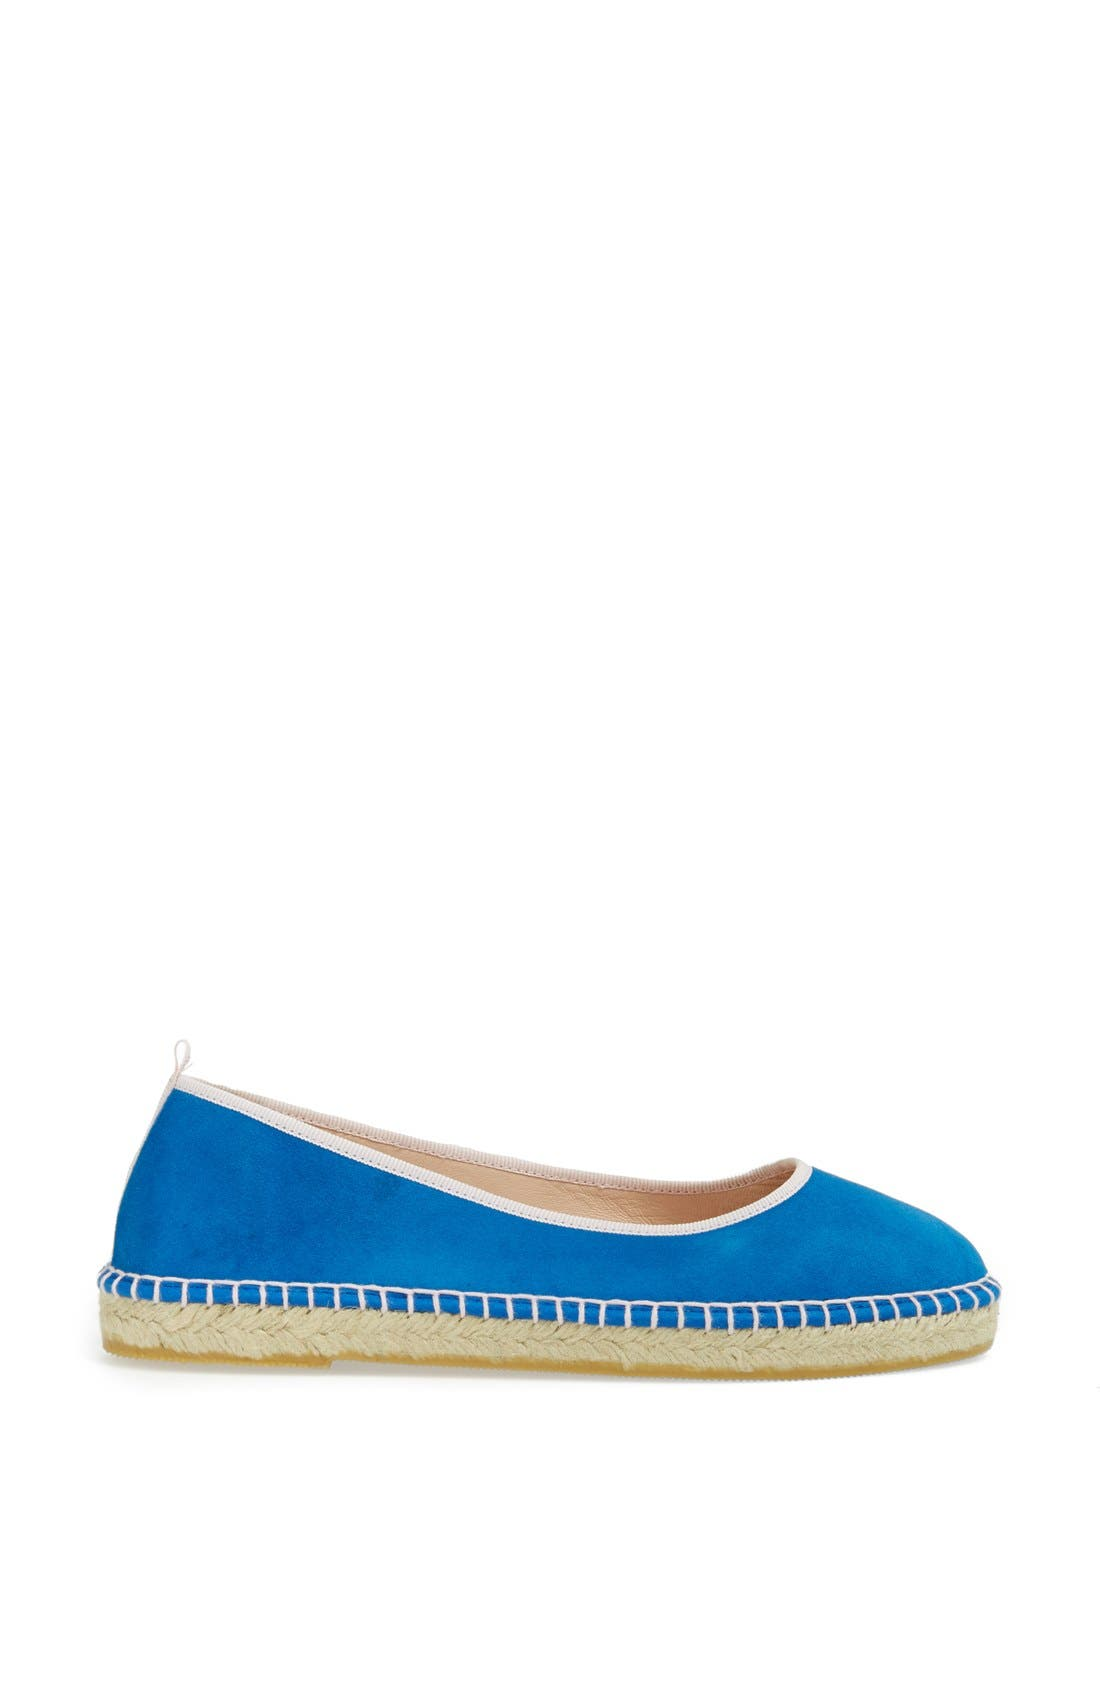 Alternate Image 4  - SJP 'Billie' Suede Flat (Nordstrom Exclusive)